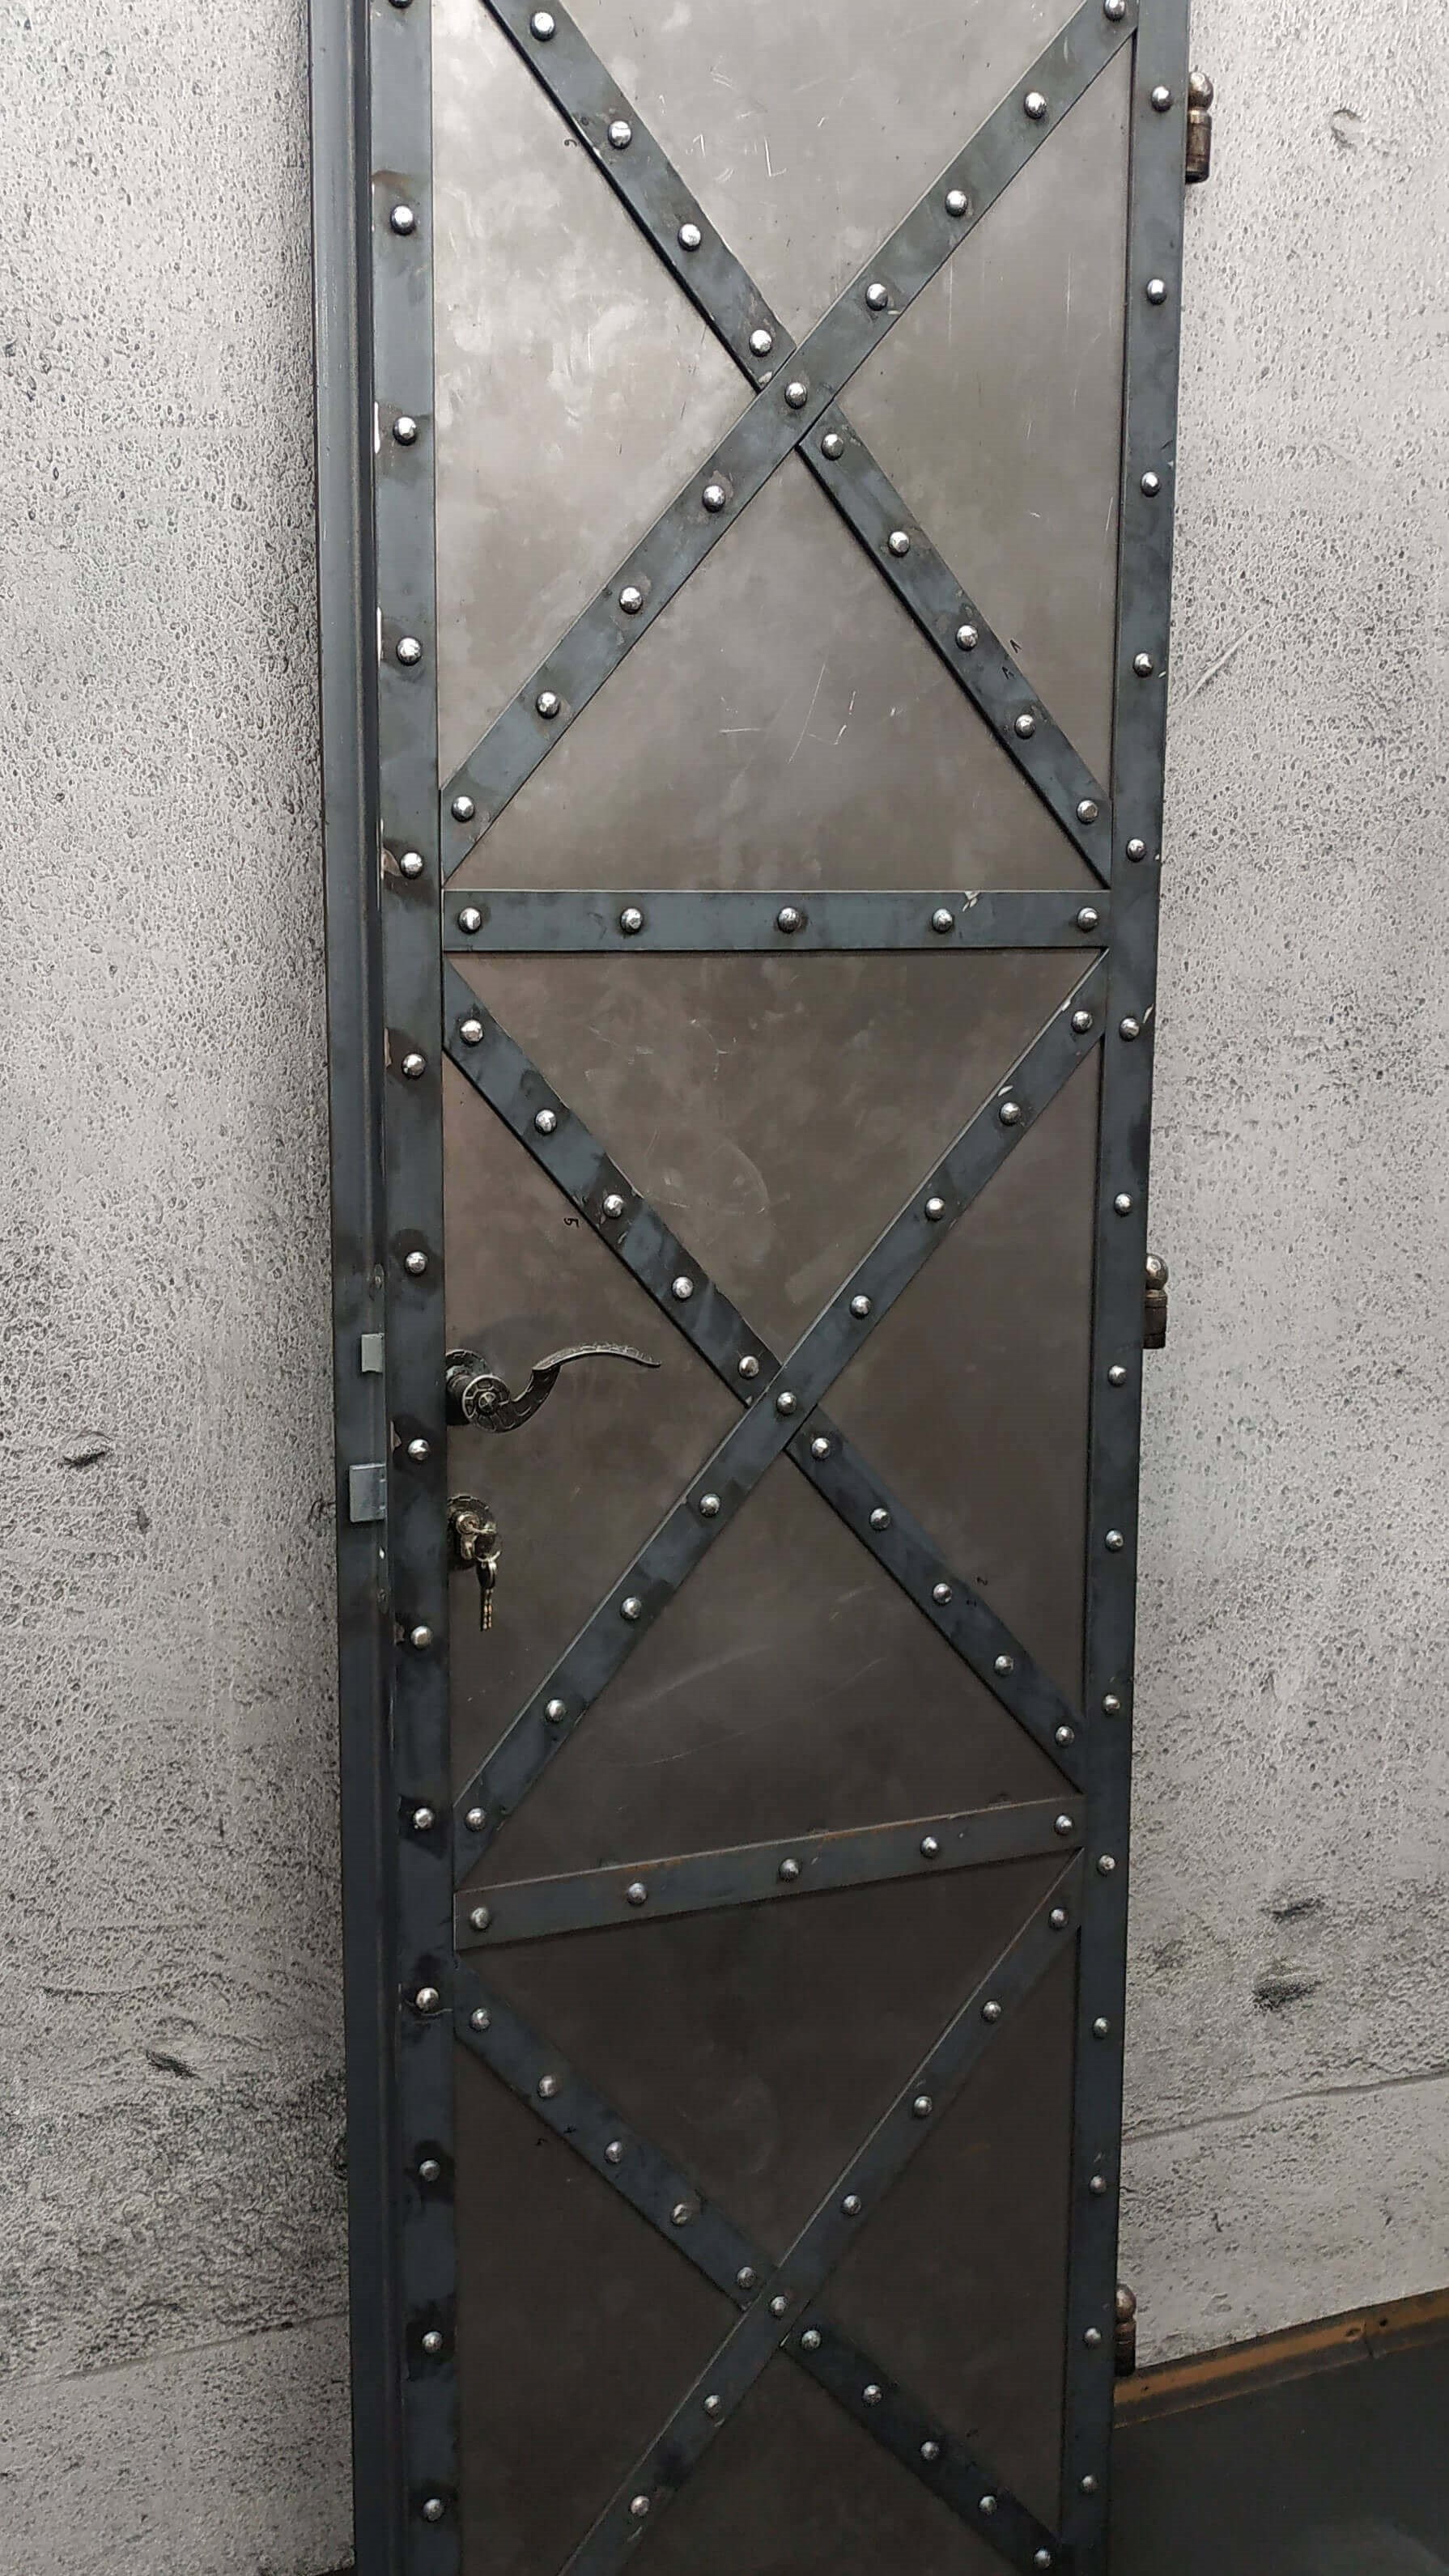 Kovové dvere, Kované dvere, Industriálne dvere, Väzenské dvere, Filmové dvere, Industrial Door Metal Door Forged Doors Old Door Prison Door Film Doors Metalrustic Rustic Door Metalltüren geschmiedete Türen Industrietor